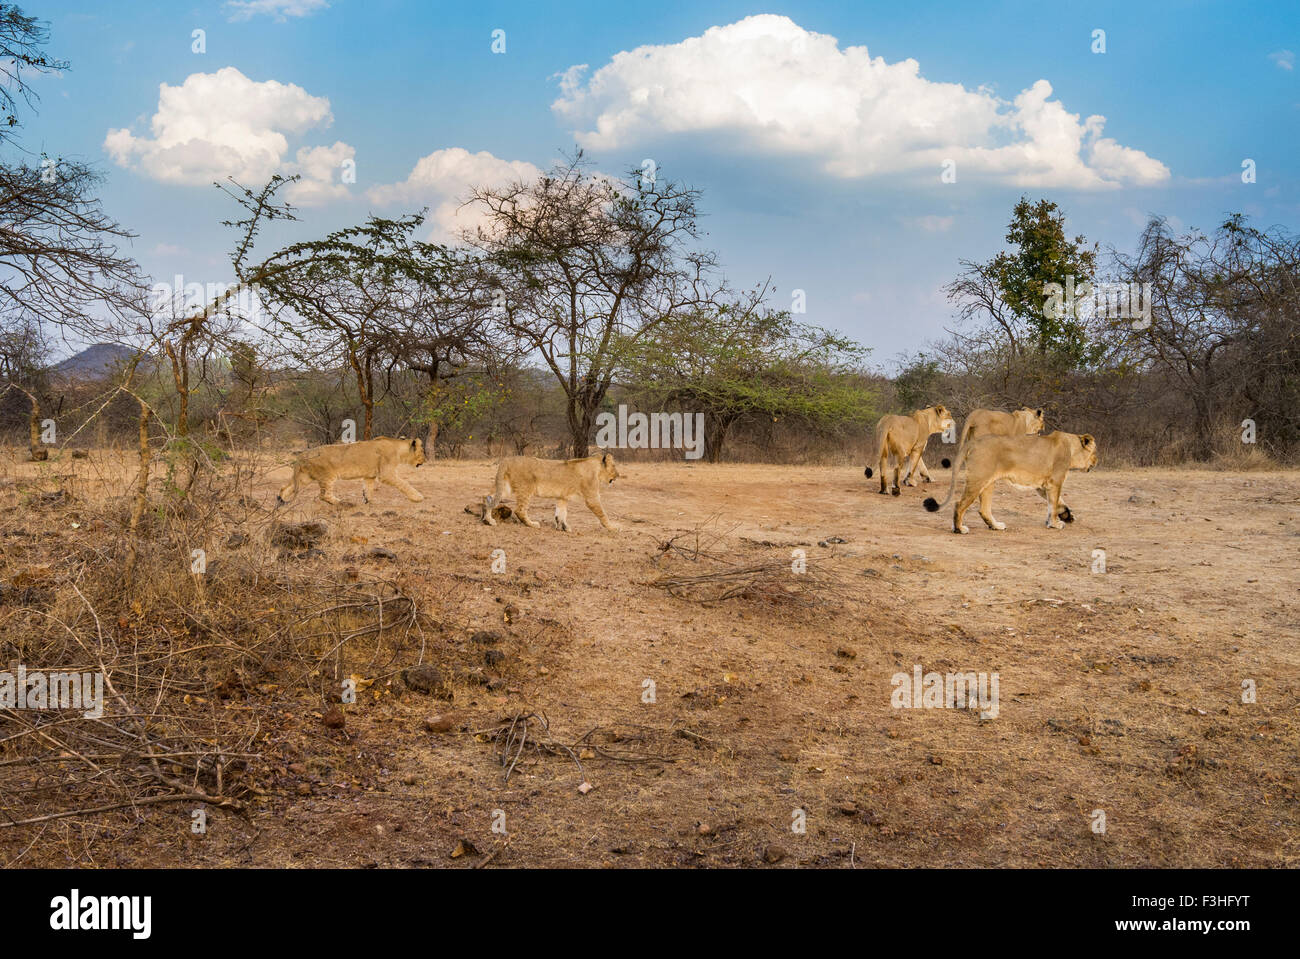 Asiatic Lions Pride [Panthera leo persica] at Gir Forest, Gujarat India. - Stock Image